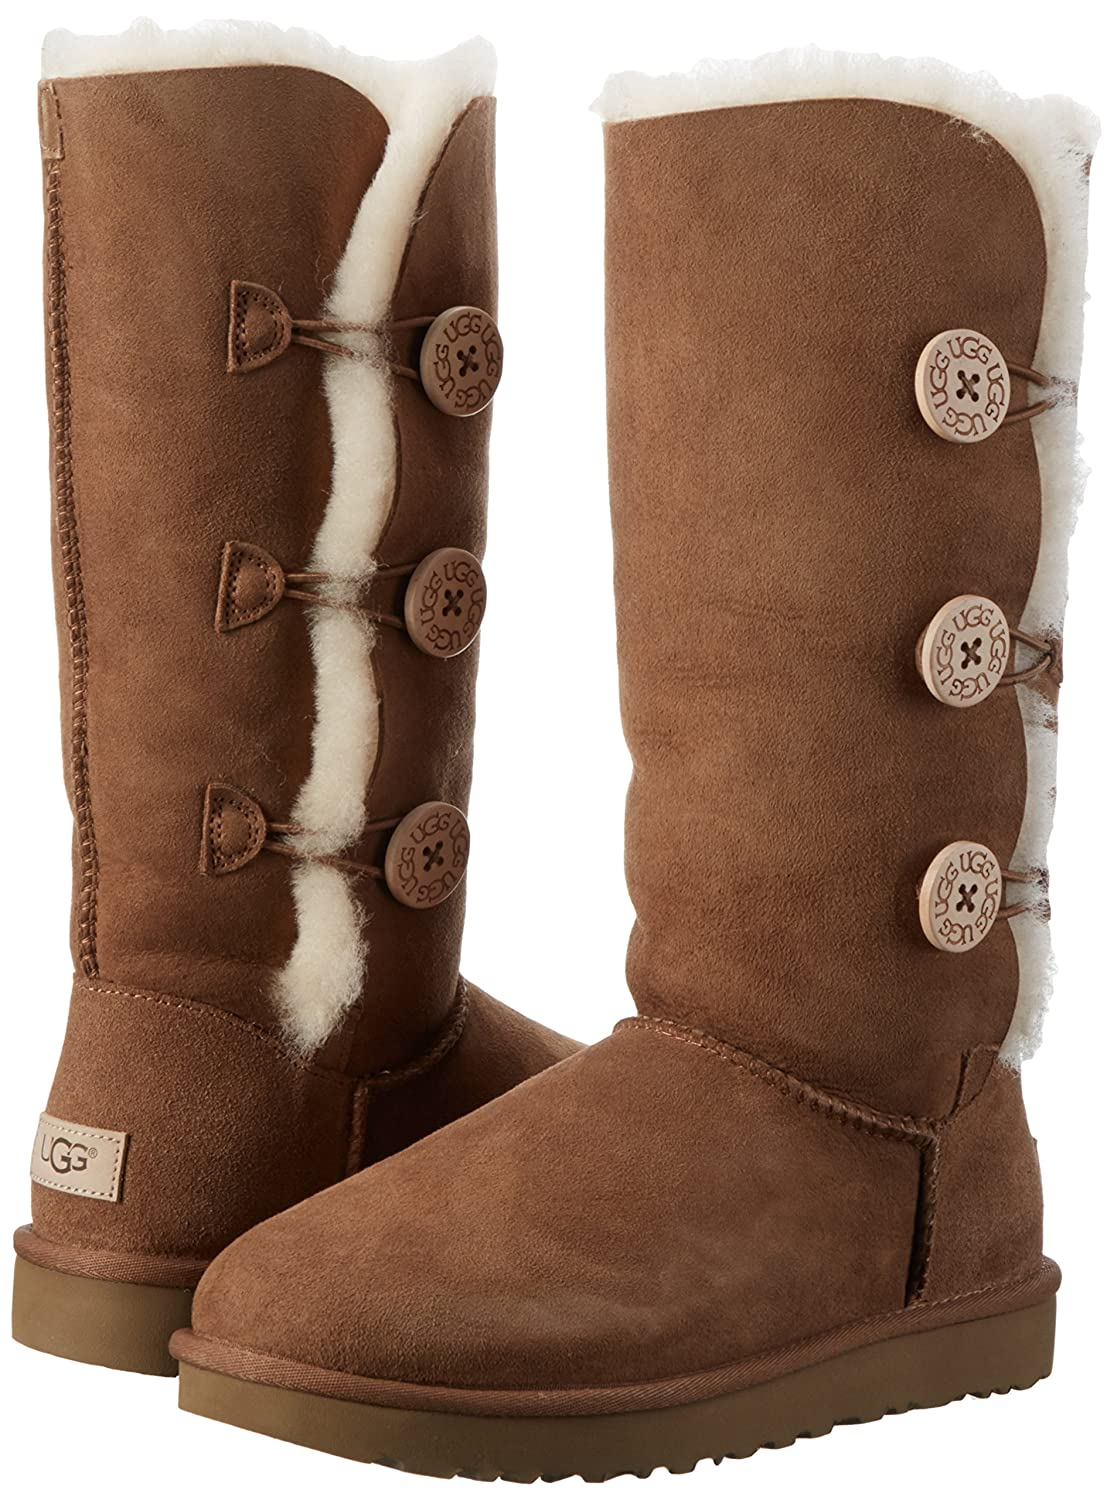 ef553efb897 Ugg Australia Bailey Button Triplet Women's Winter Boots